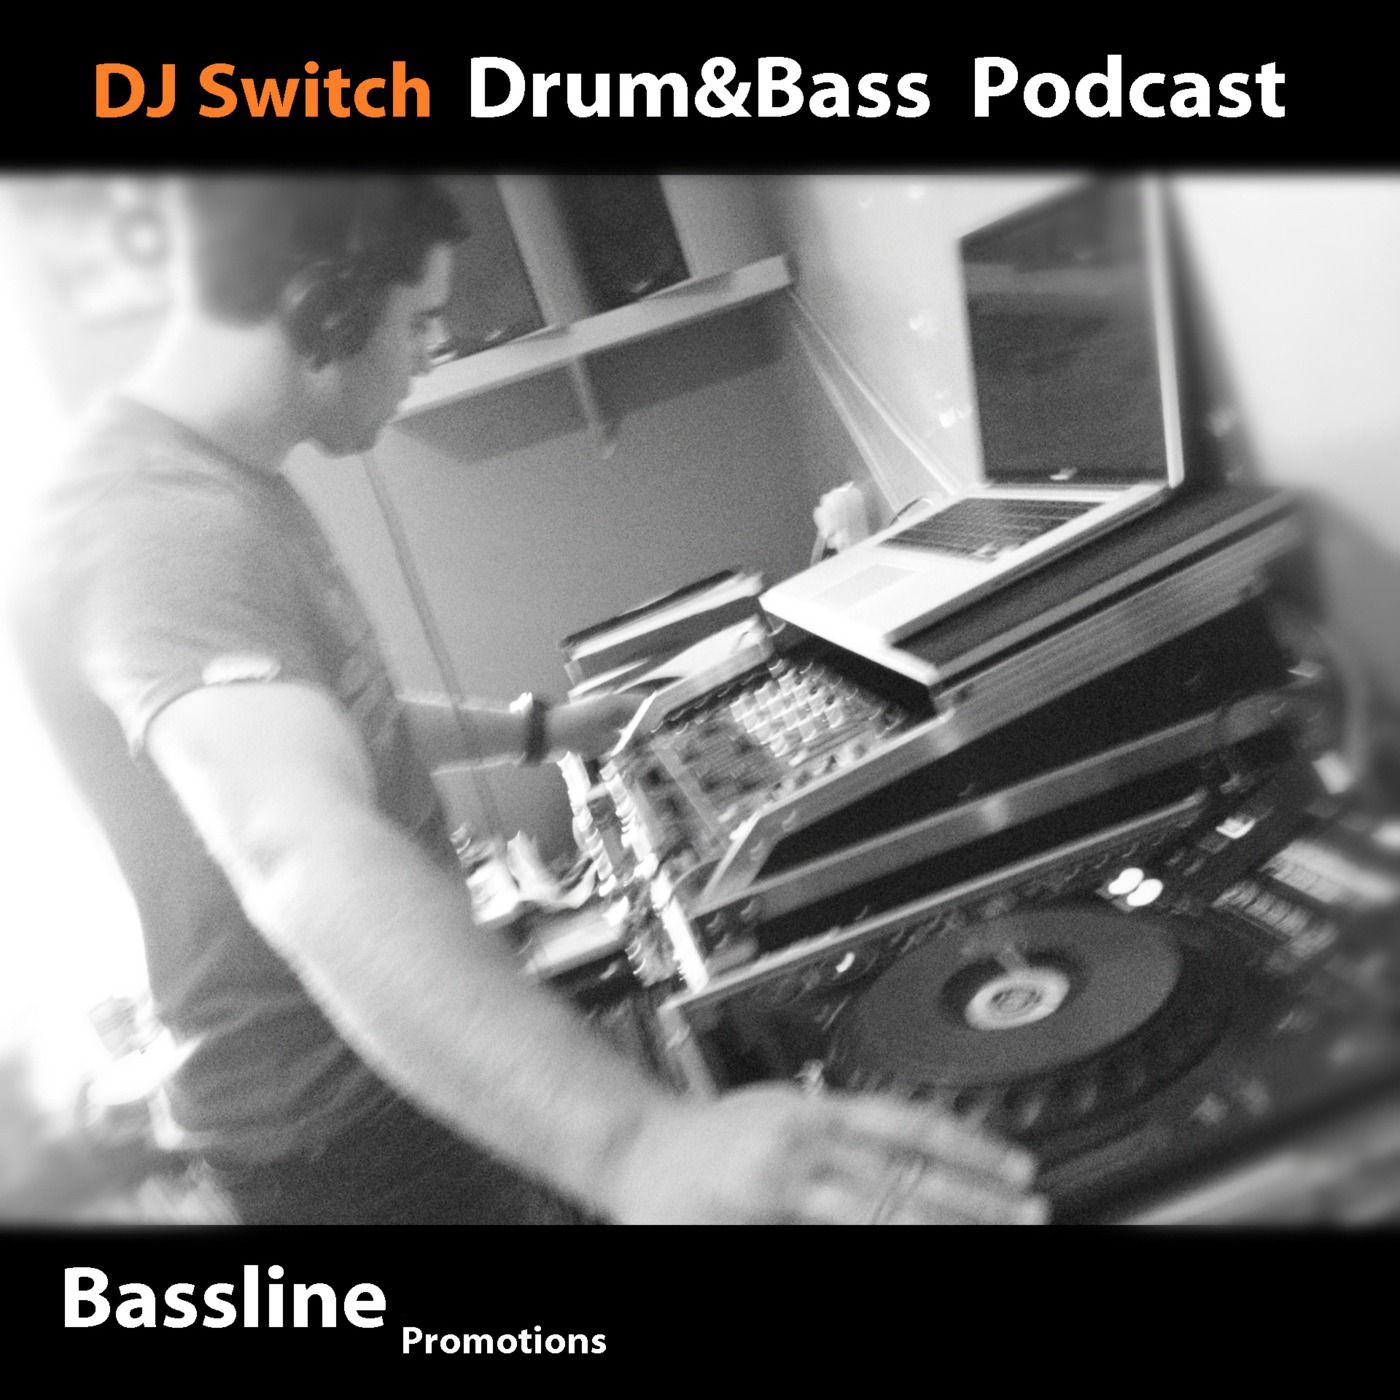 DJ Switch dnb Podcast